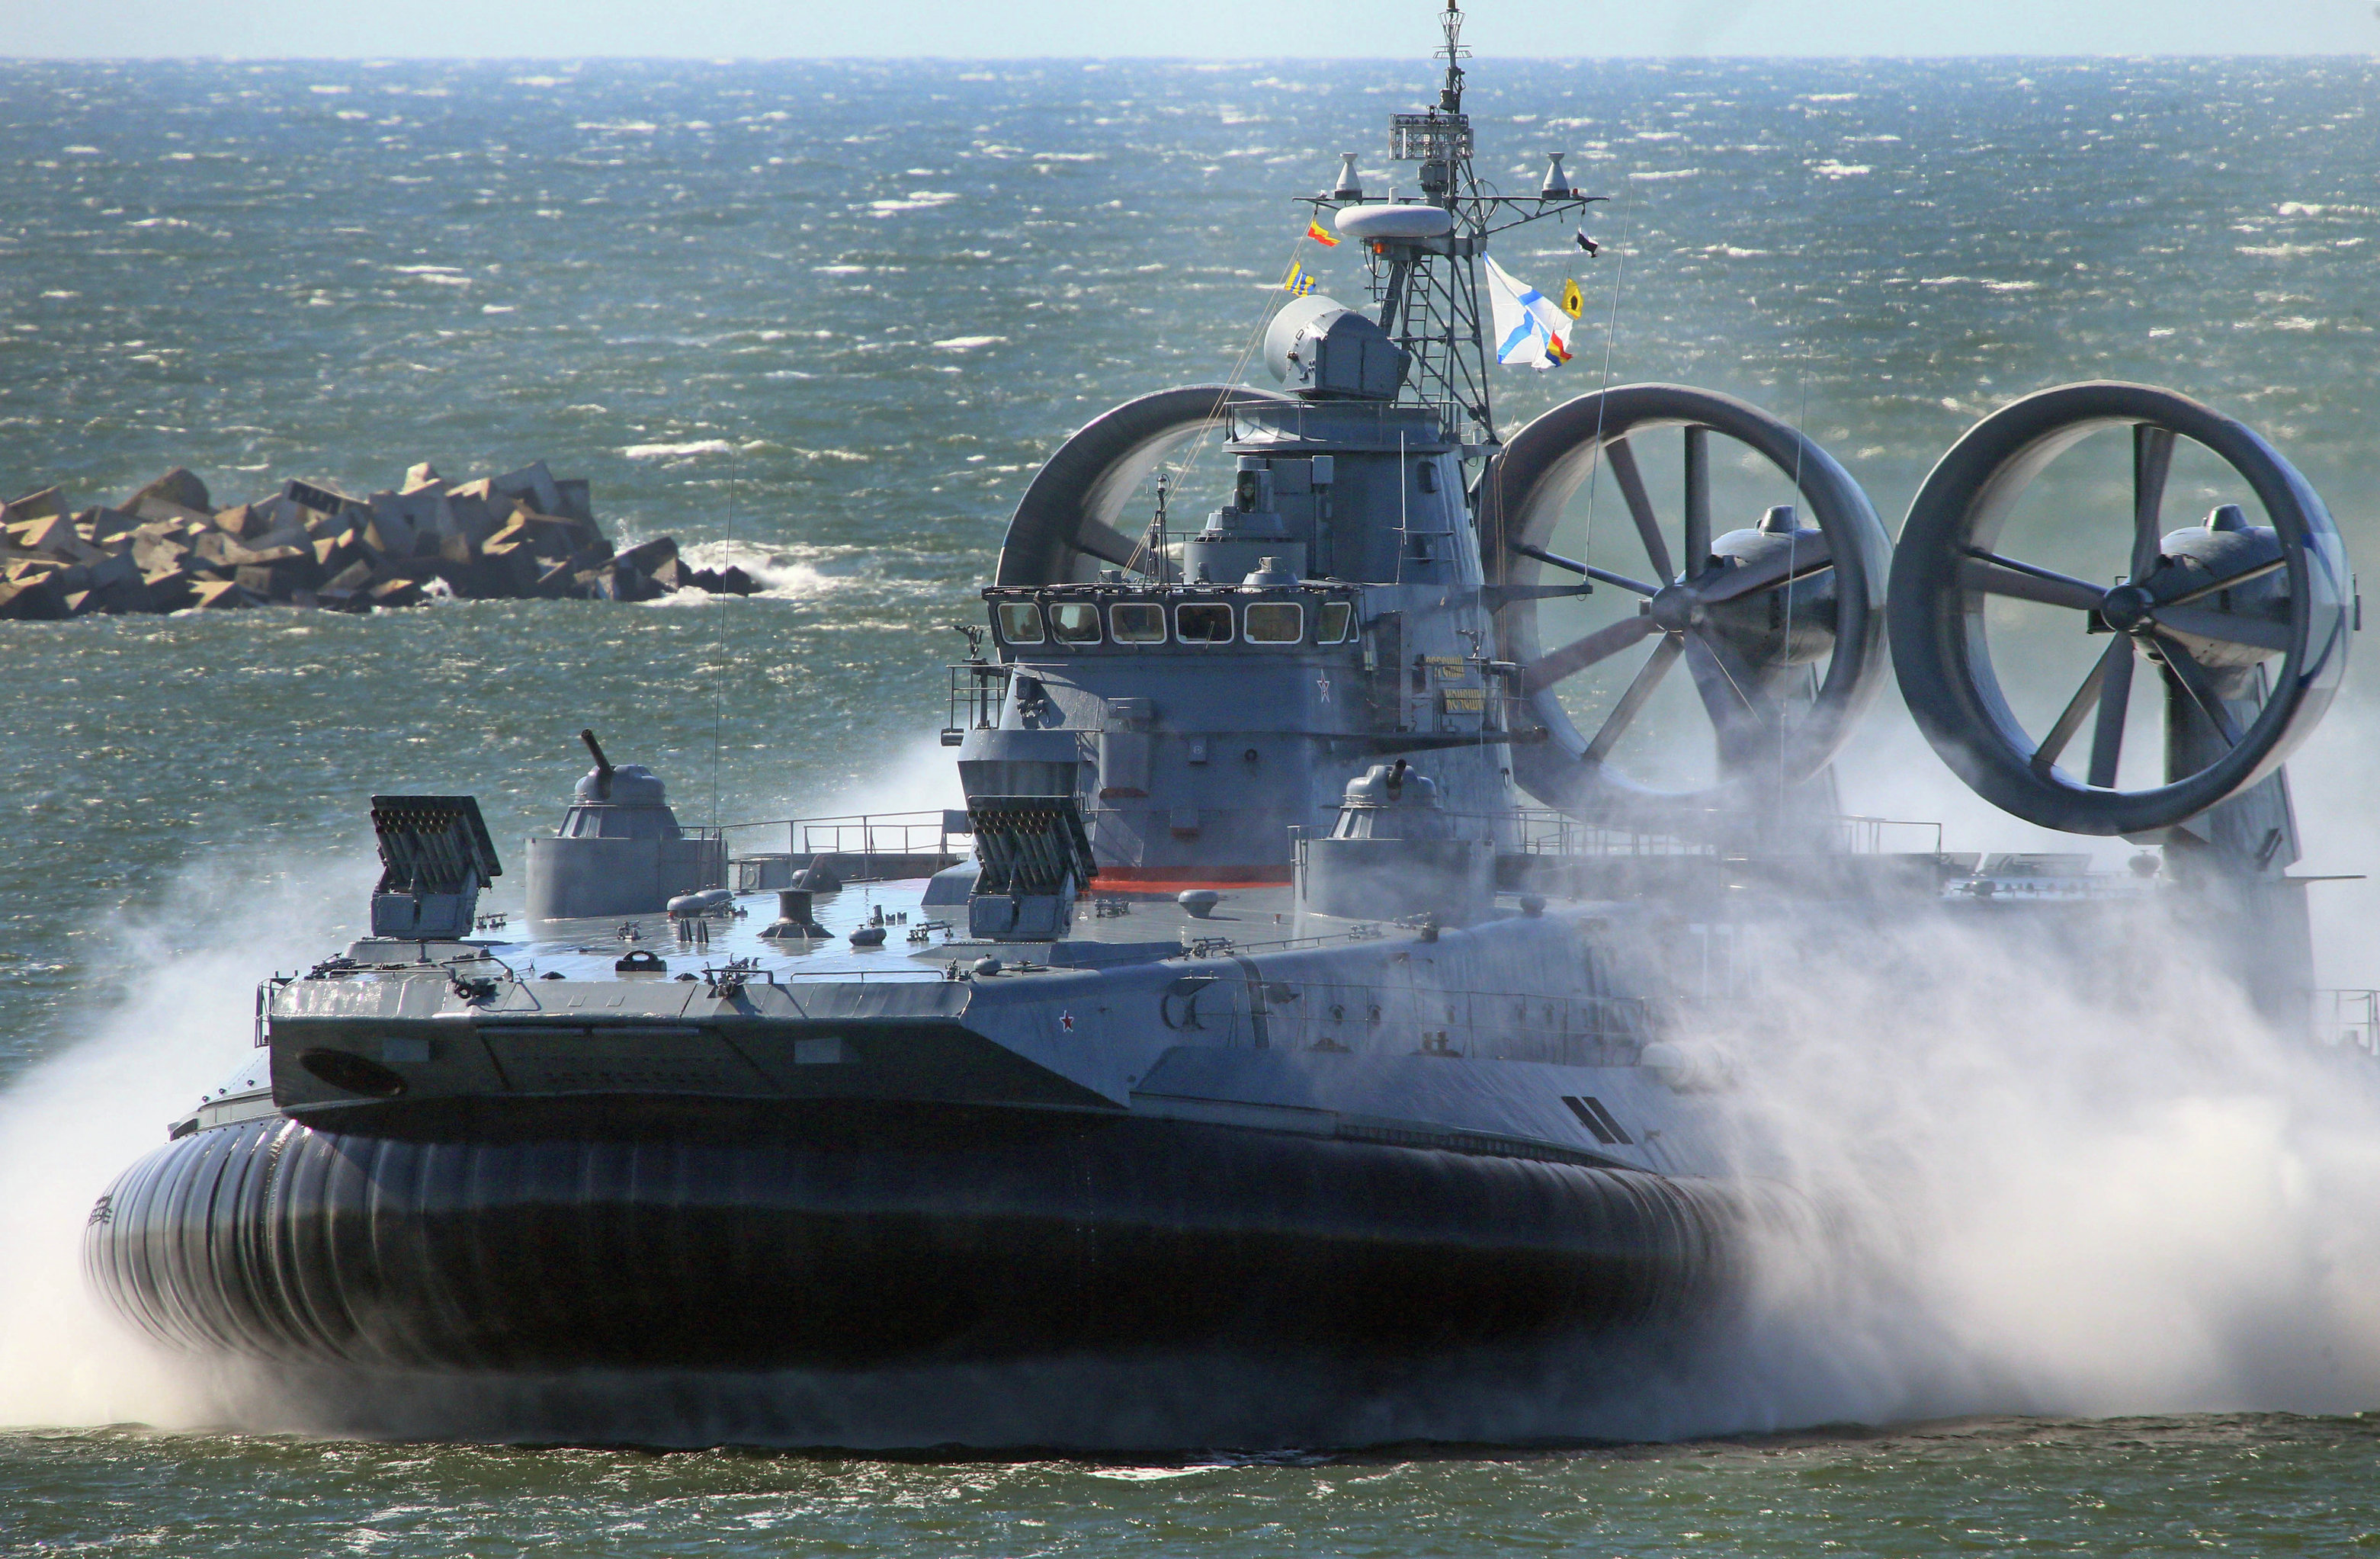 The Yevgeny Kocheshkov small landing hovercraft during a rehearsal of a Navy Day Parade in the Marine Canal of Baltiysk